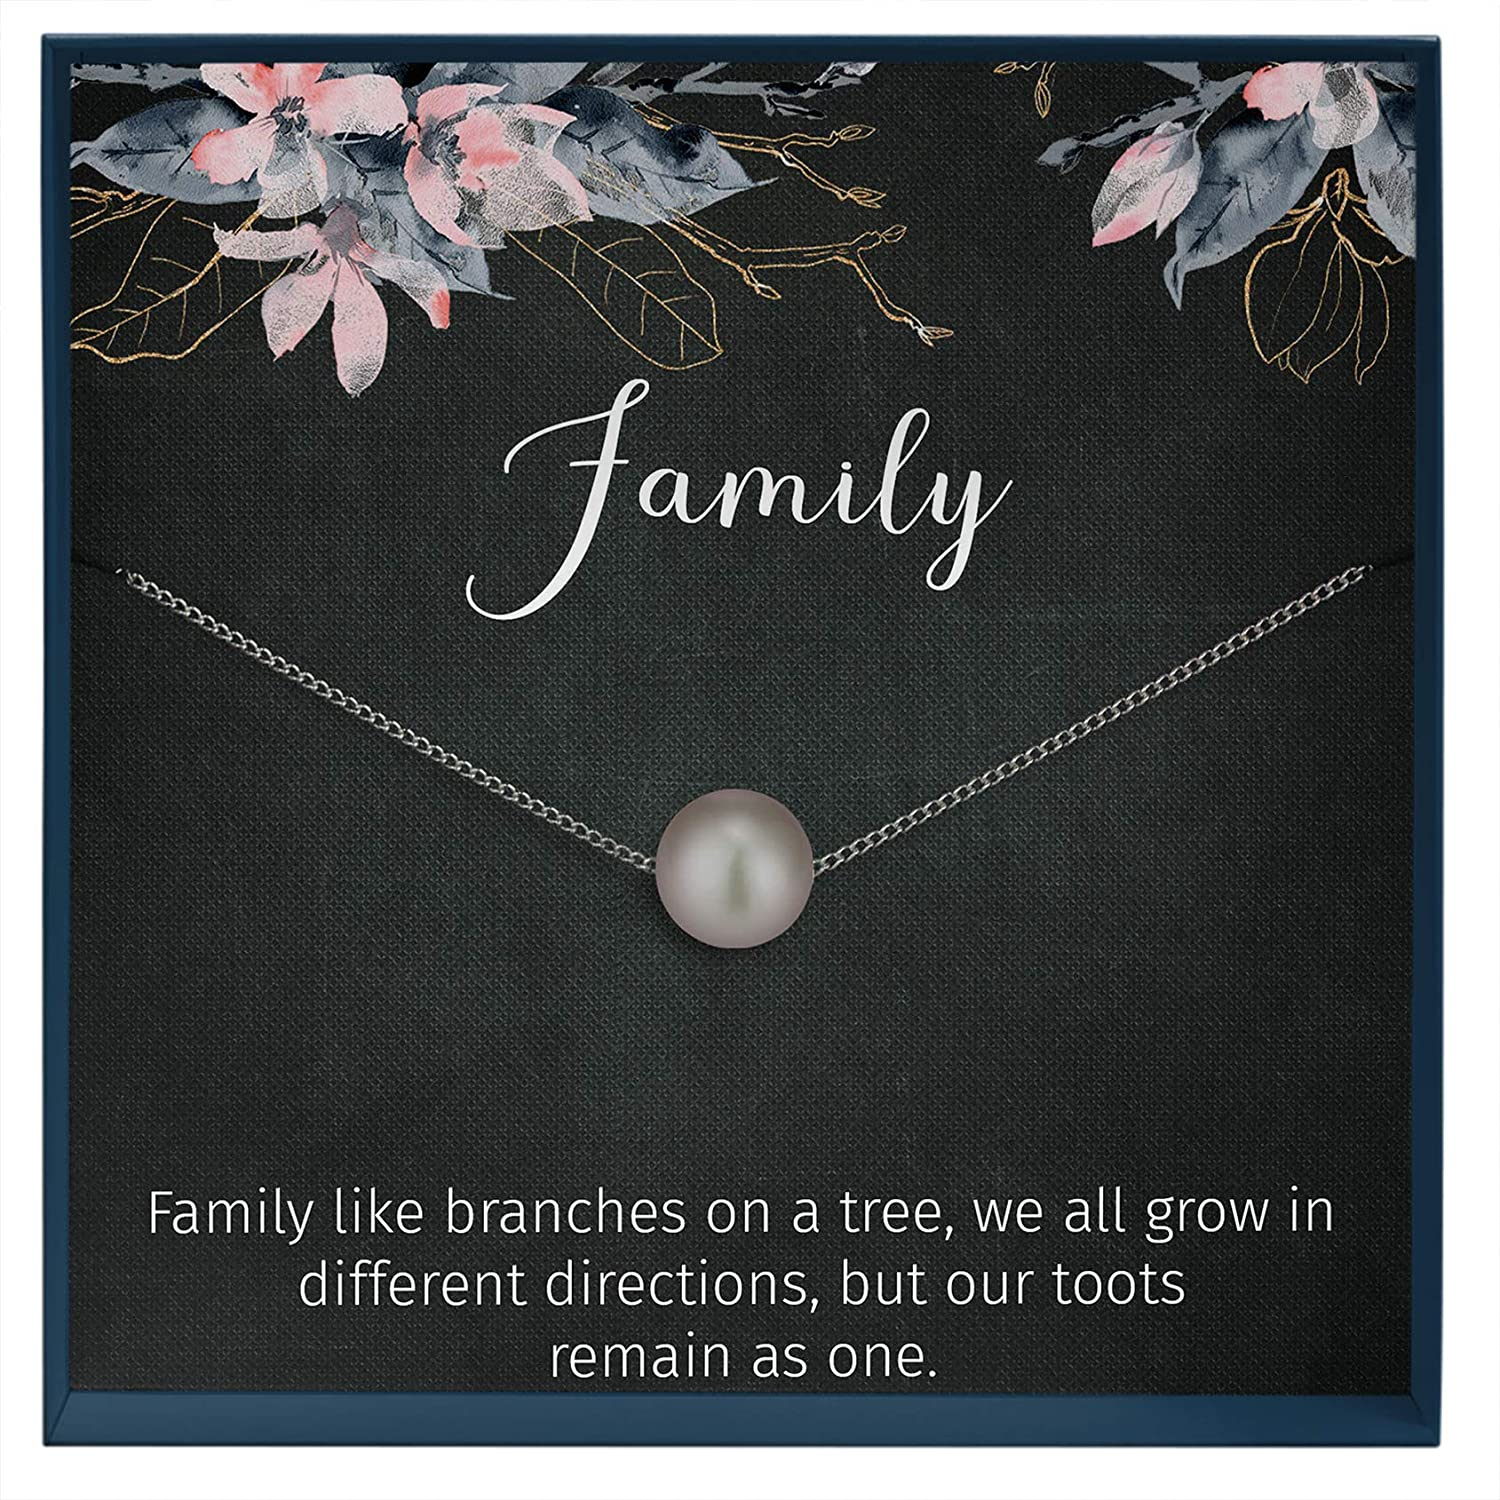 Muse Infinite Family Jewelry Grandmother Gift Grandmother to be Family Necklace Generation Jewelry Family Tree